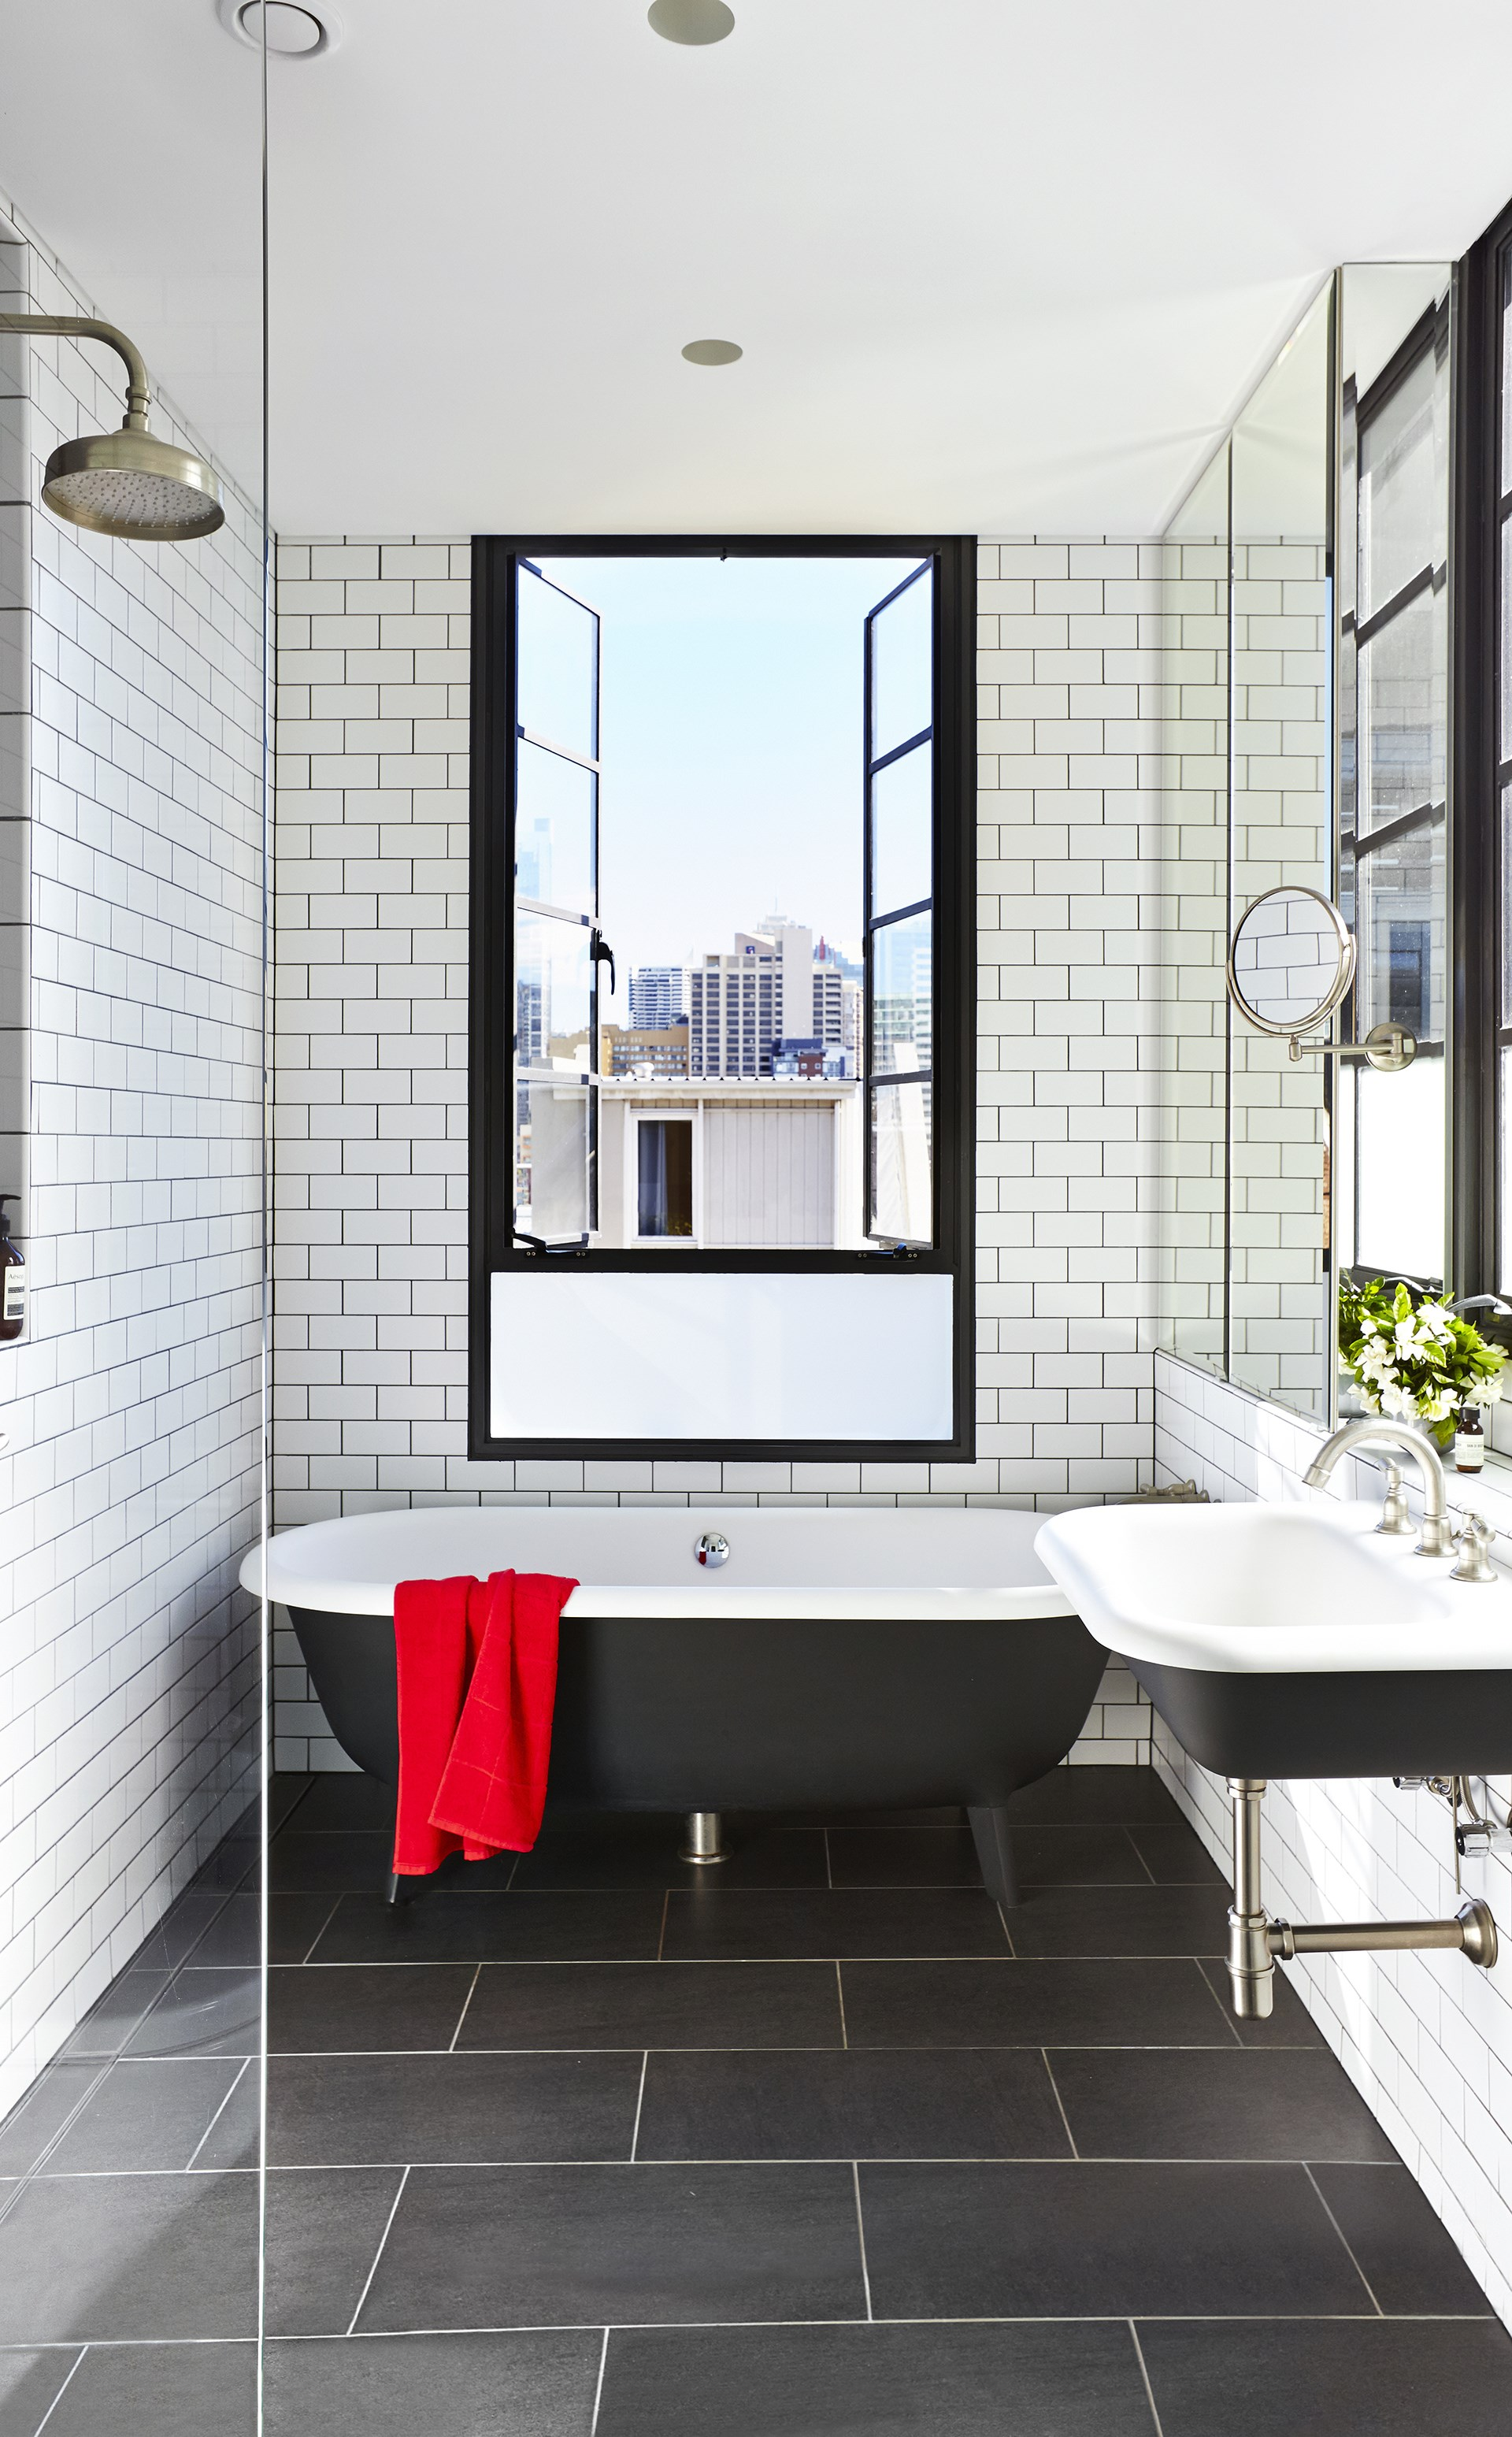 Subway tiles are classic choice for the bathroom in this heritage [Sydney terrace](http://www.homestolove.com.au/gallery-1850s-sydney-terrace-gets-a-modern-makeover-2396) but dark grout and a matt finish gives the bathroom a modern edge. *Photo: John Paul Urizar / Australian House and Garden*